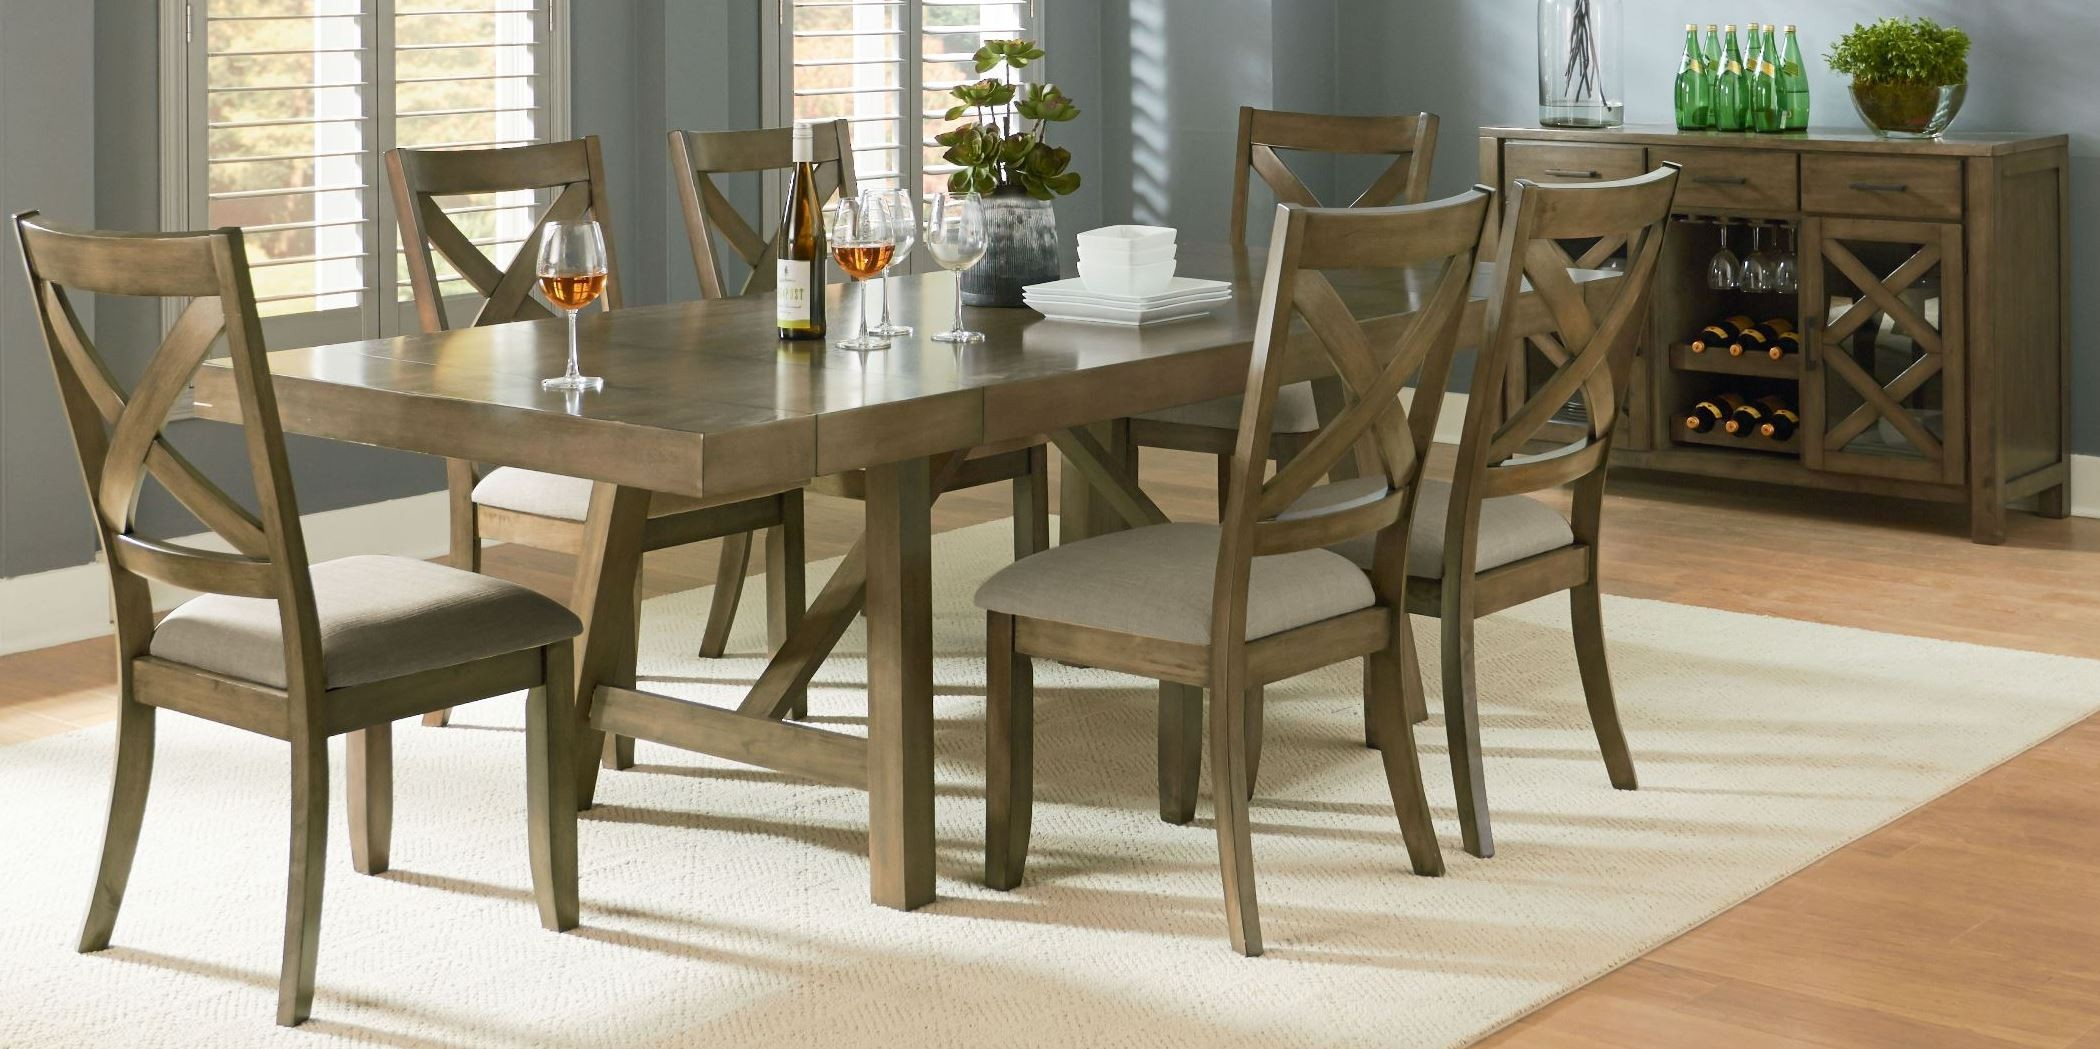 Omaha Weathered Burnished Gray Extendable Trestle Dining Room Set From Standa